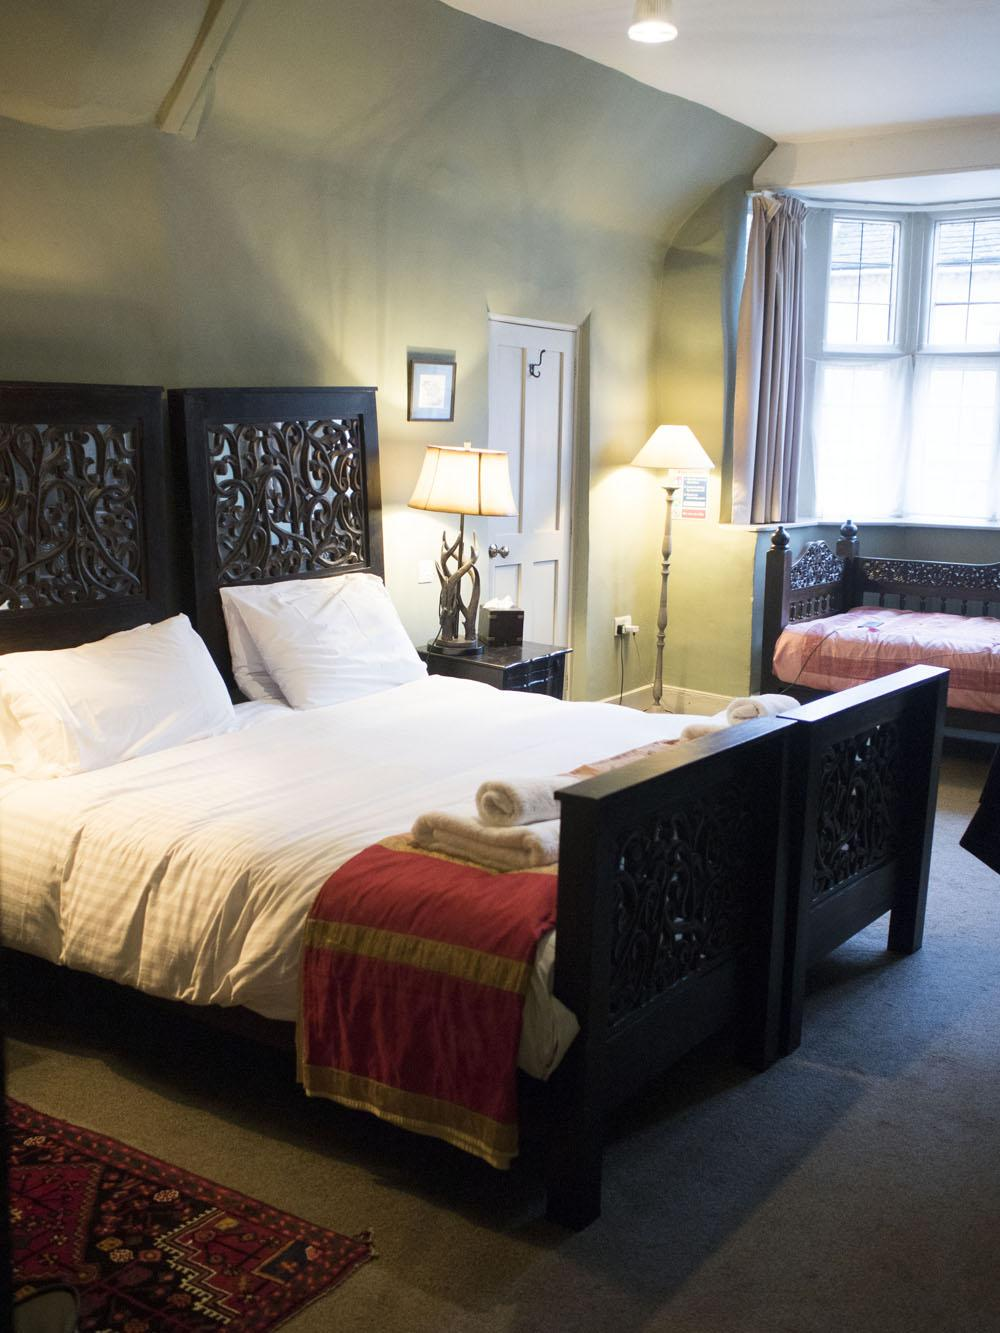 An Overnight Stay at The Bull and Swan at Burghley